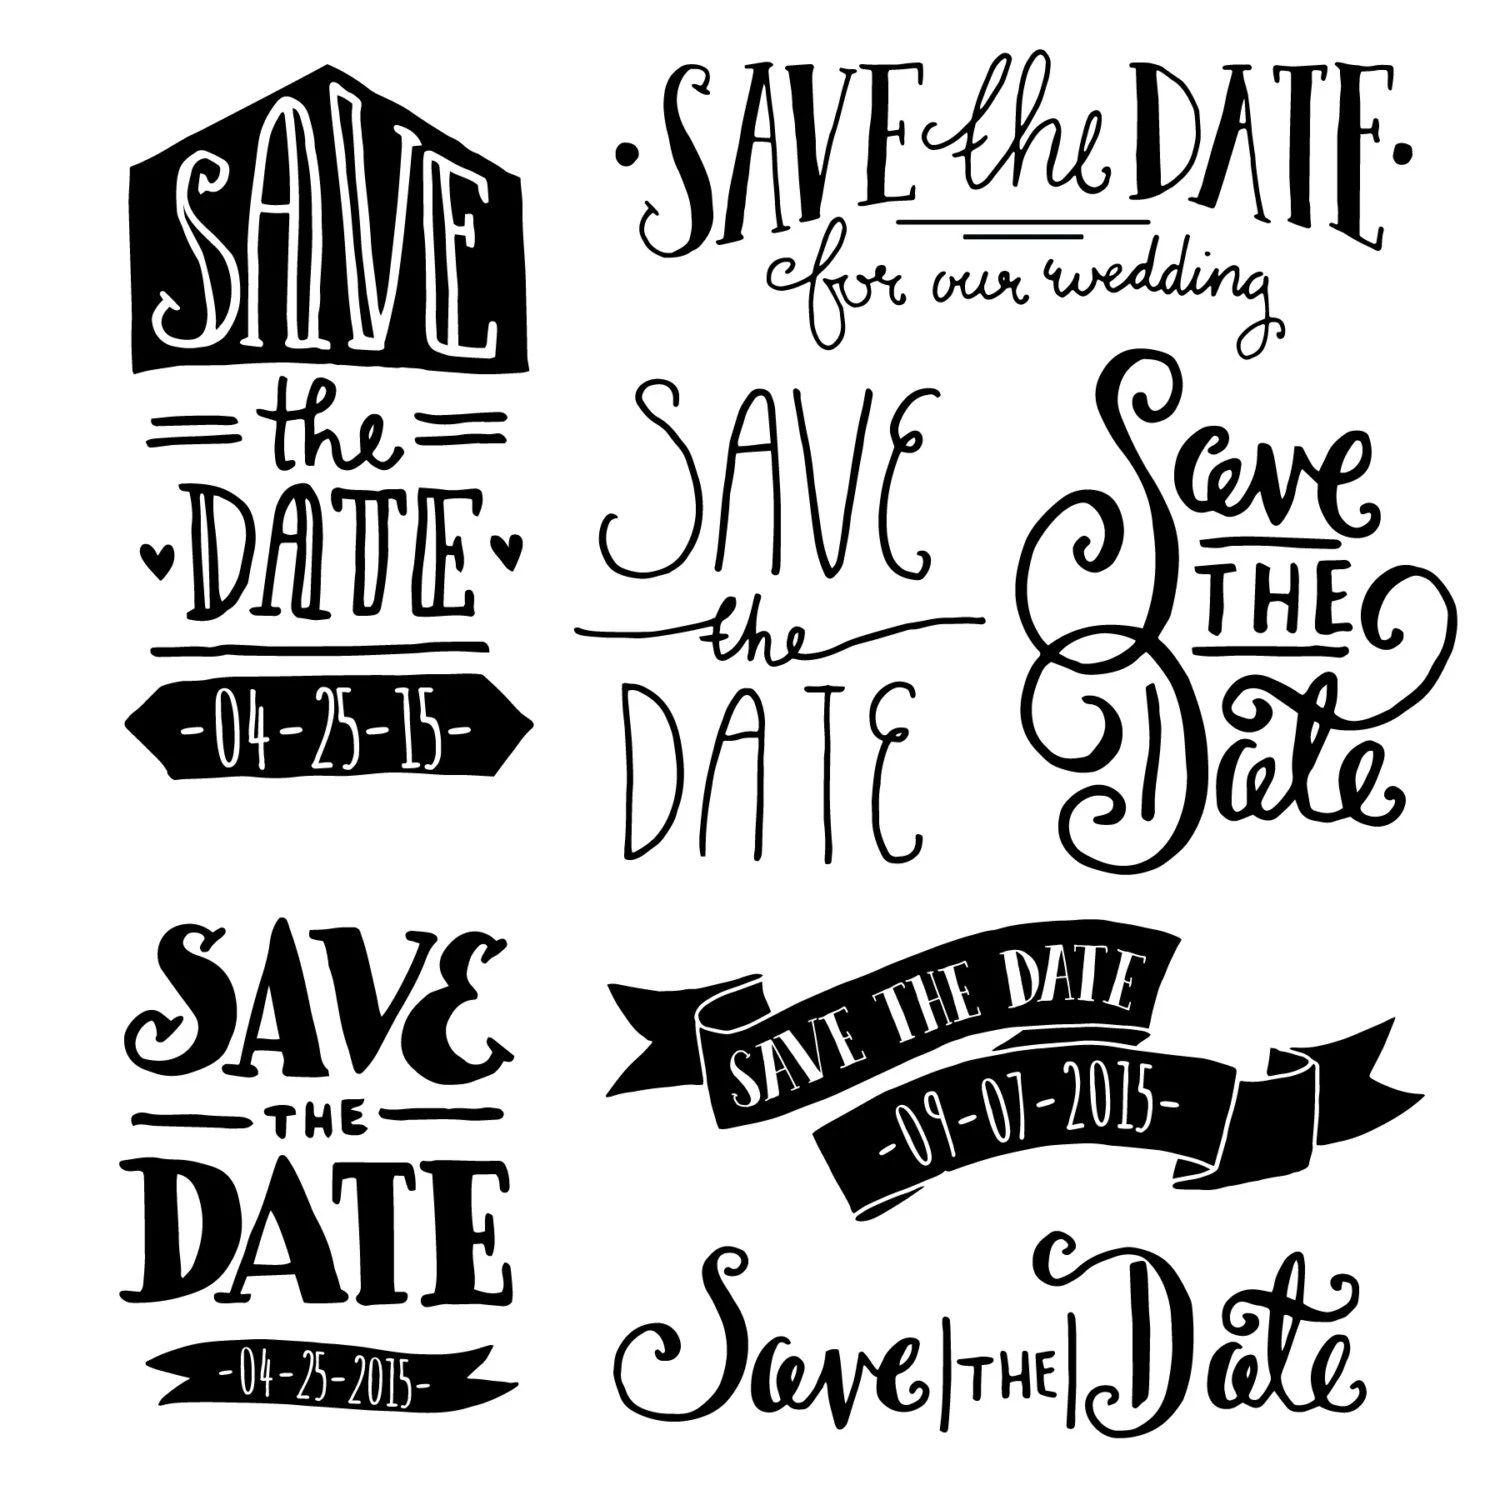 Save The Date Clip Art Photoshop Psd Editable Vector